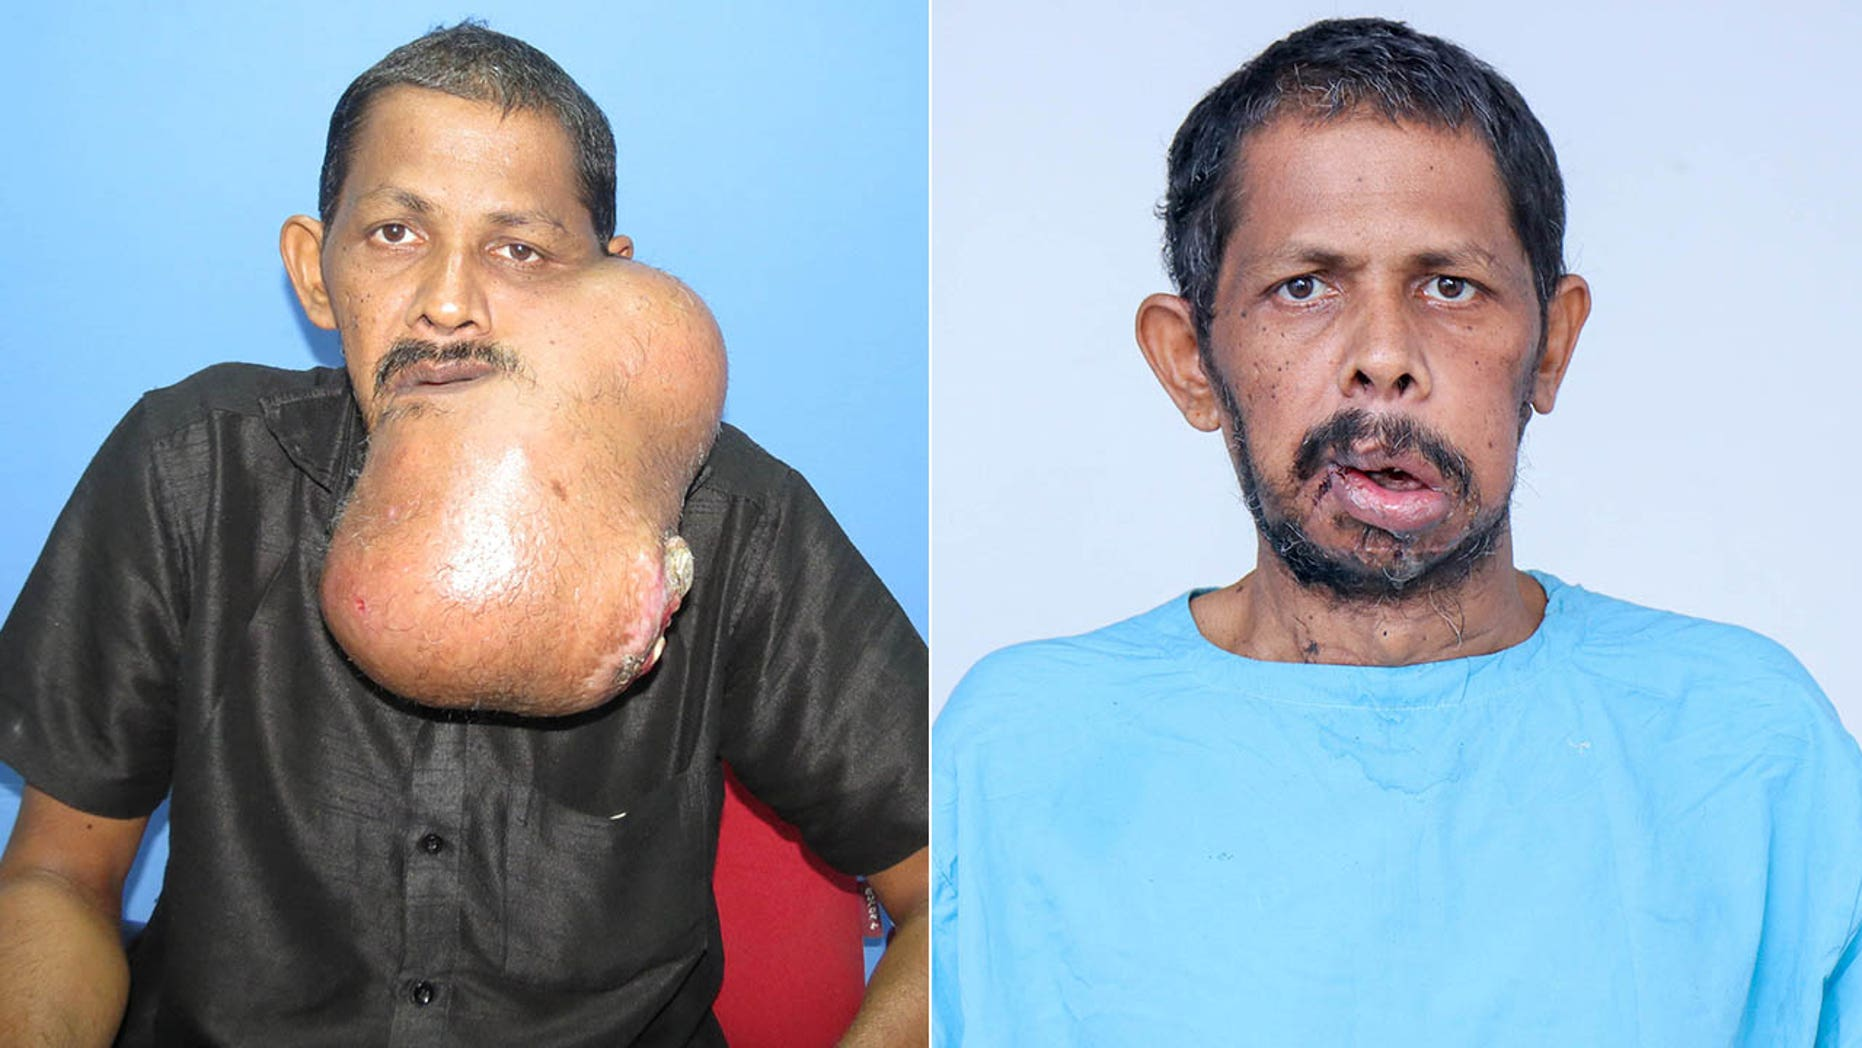 Majeed N, 45, from India, underwent a painstaking 12-hour facelift surgery to have the cancerous lump cut out.